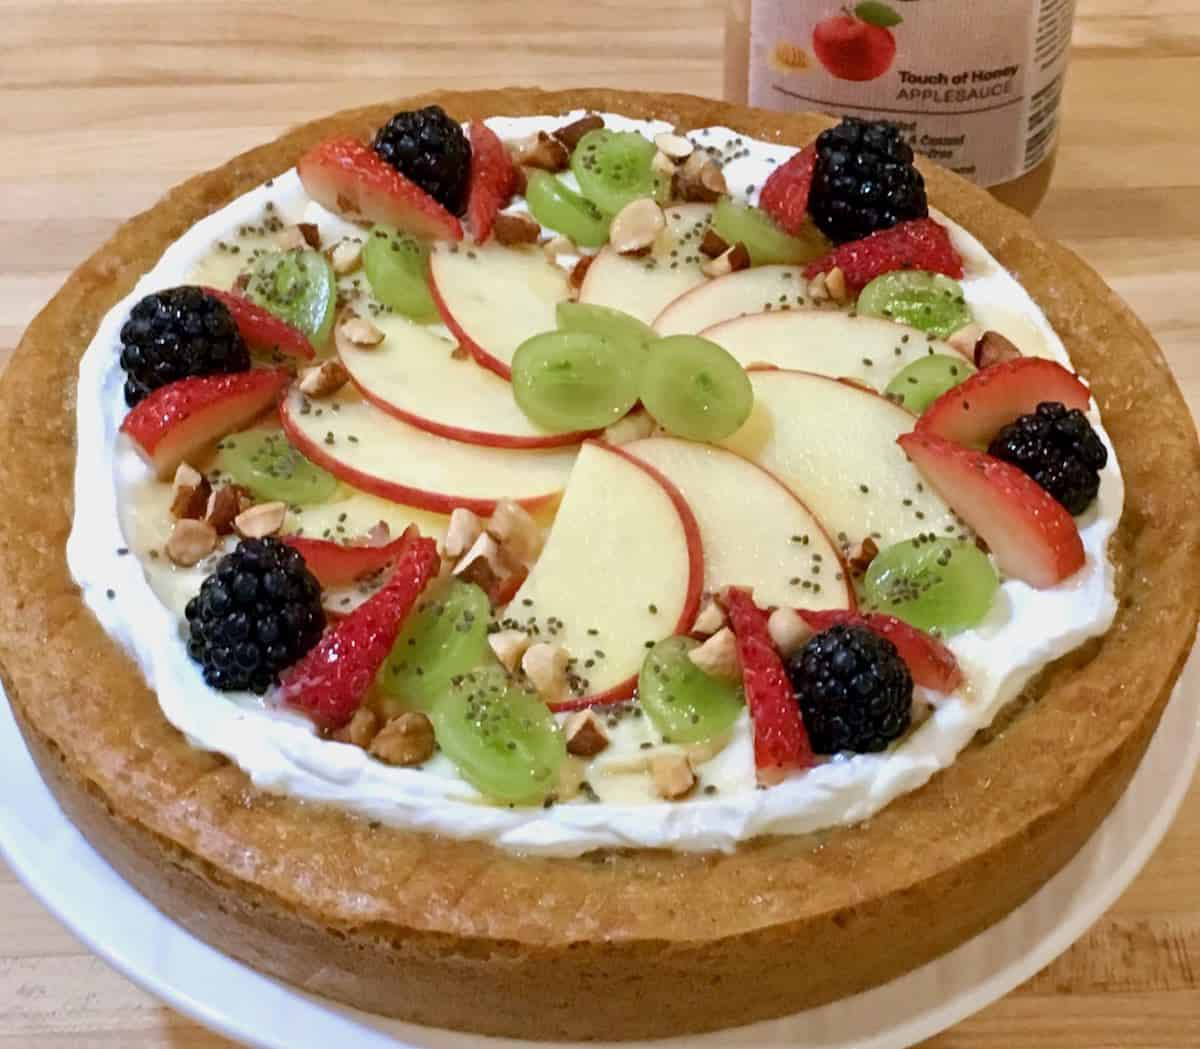 fresh fruit topped cake made with applesauce